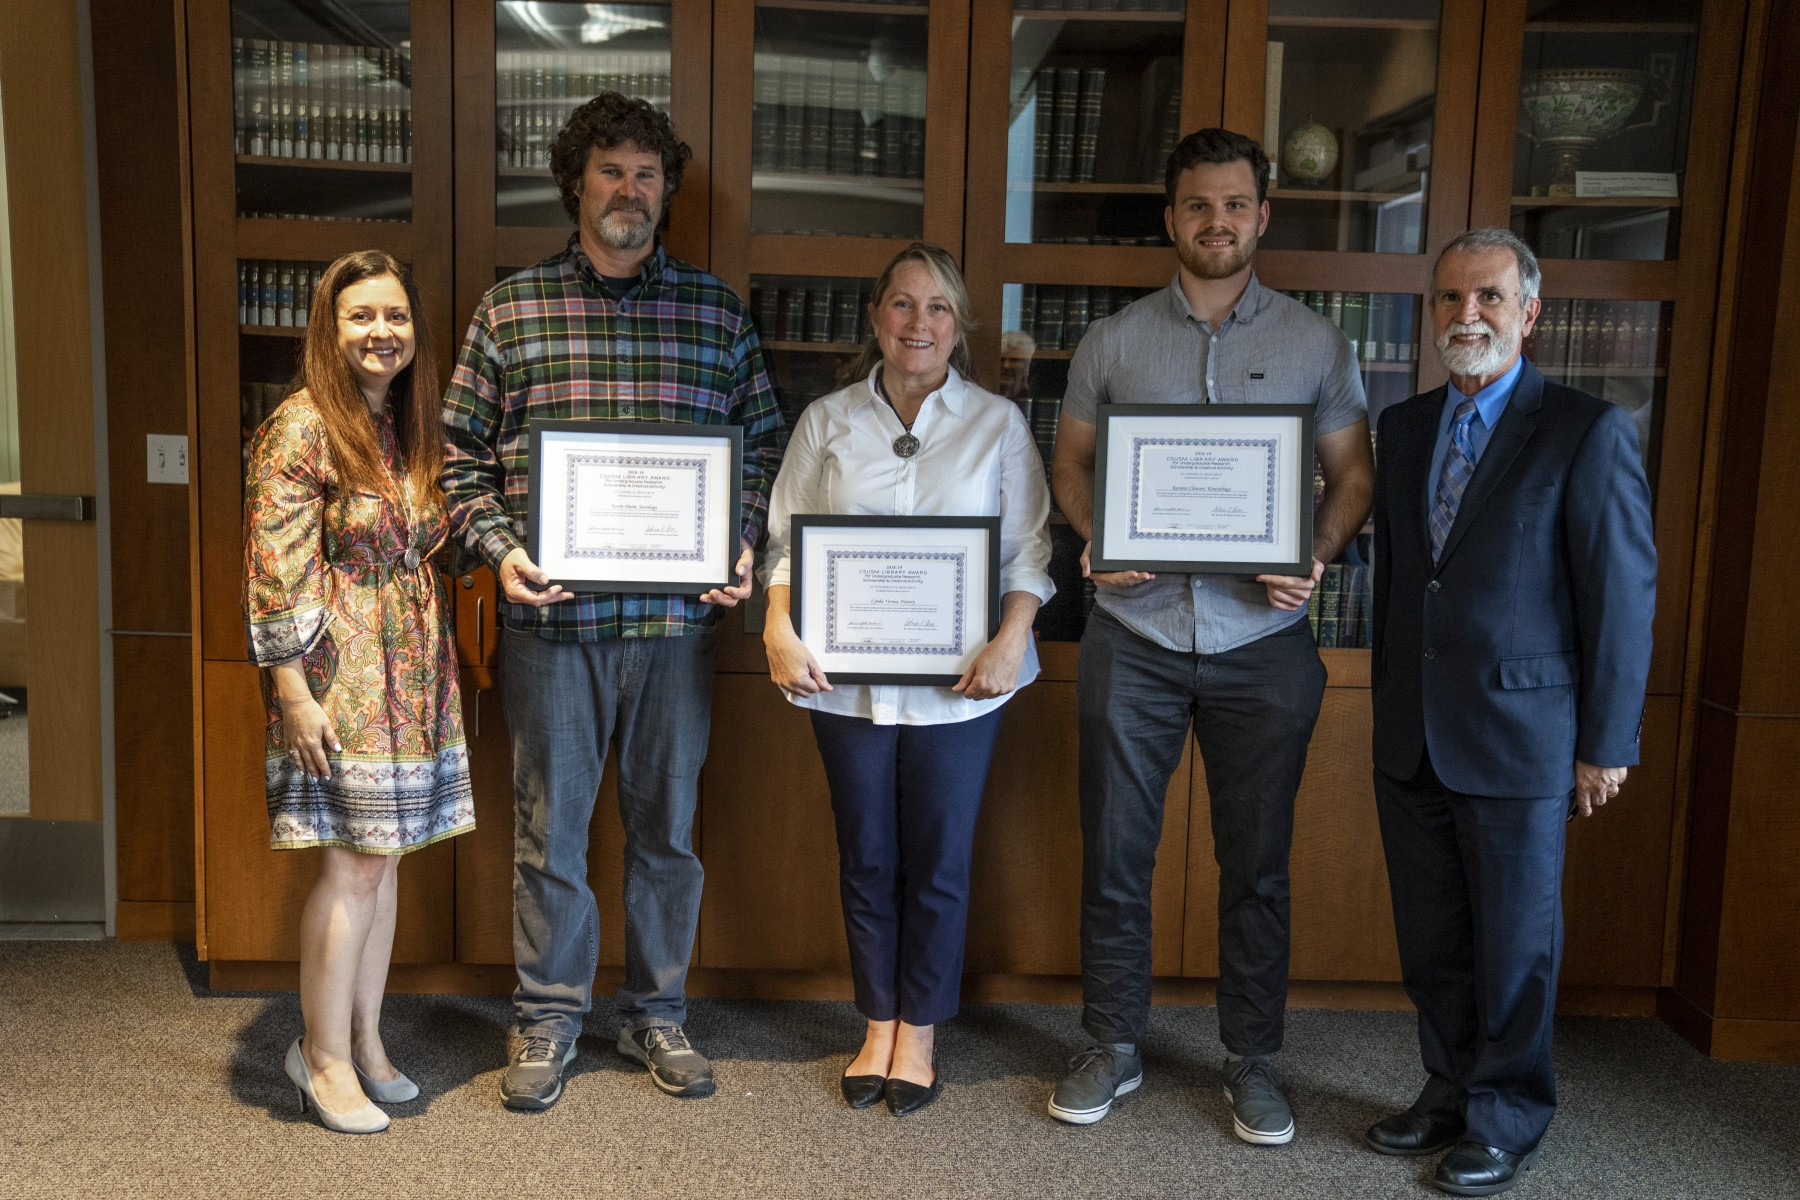 4th Annual CSUSM Library Award for Undergraduate Research, Scholarship, and Creative Activity